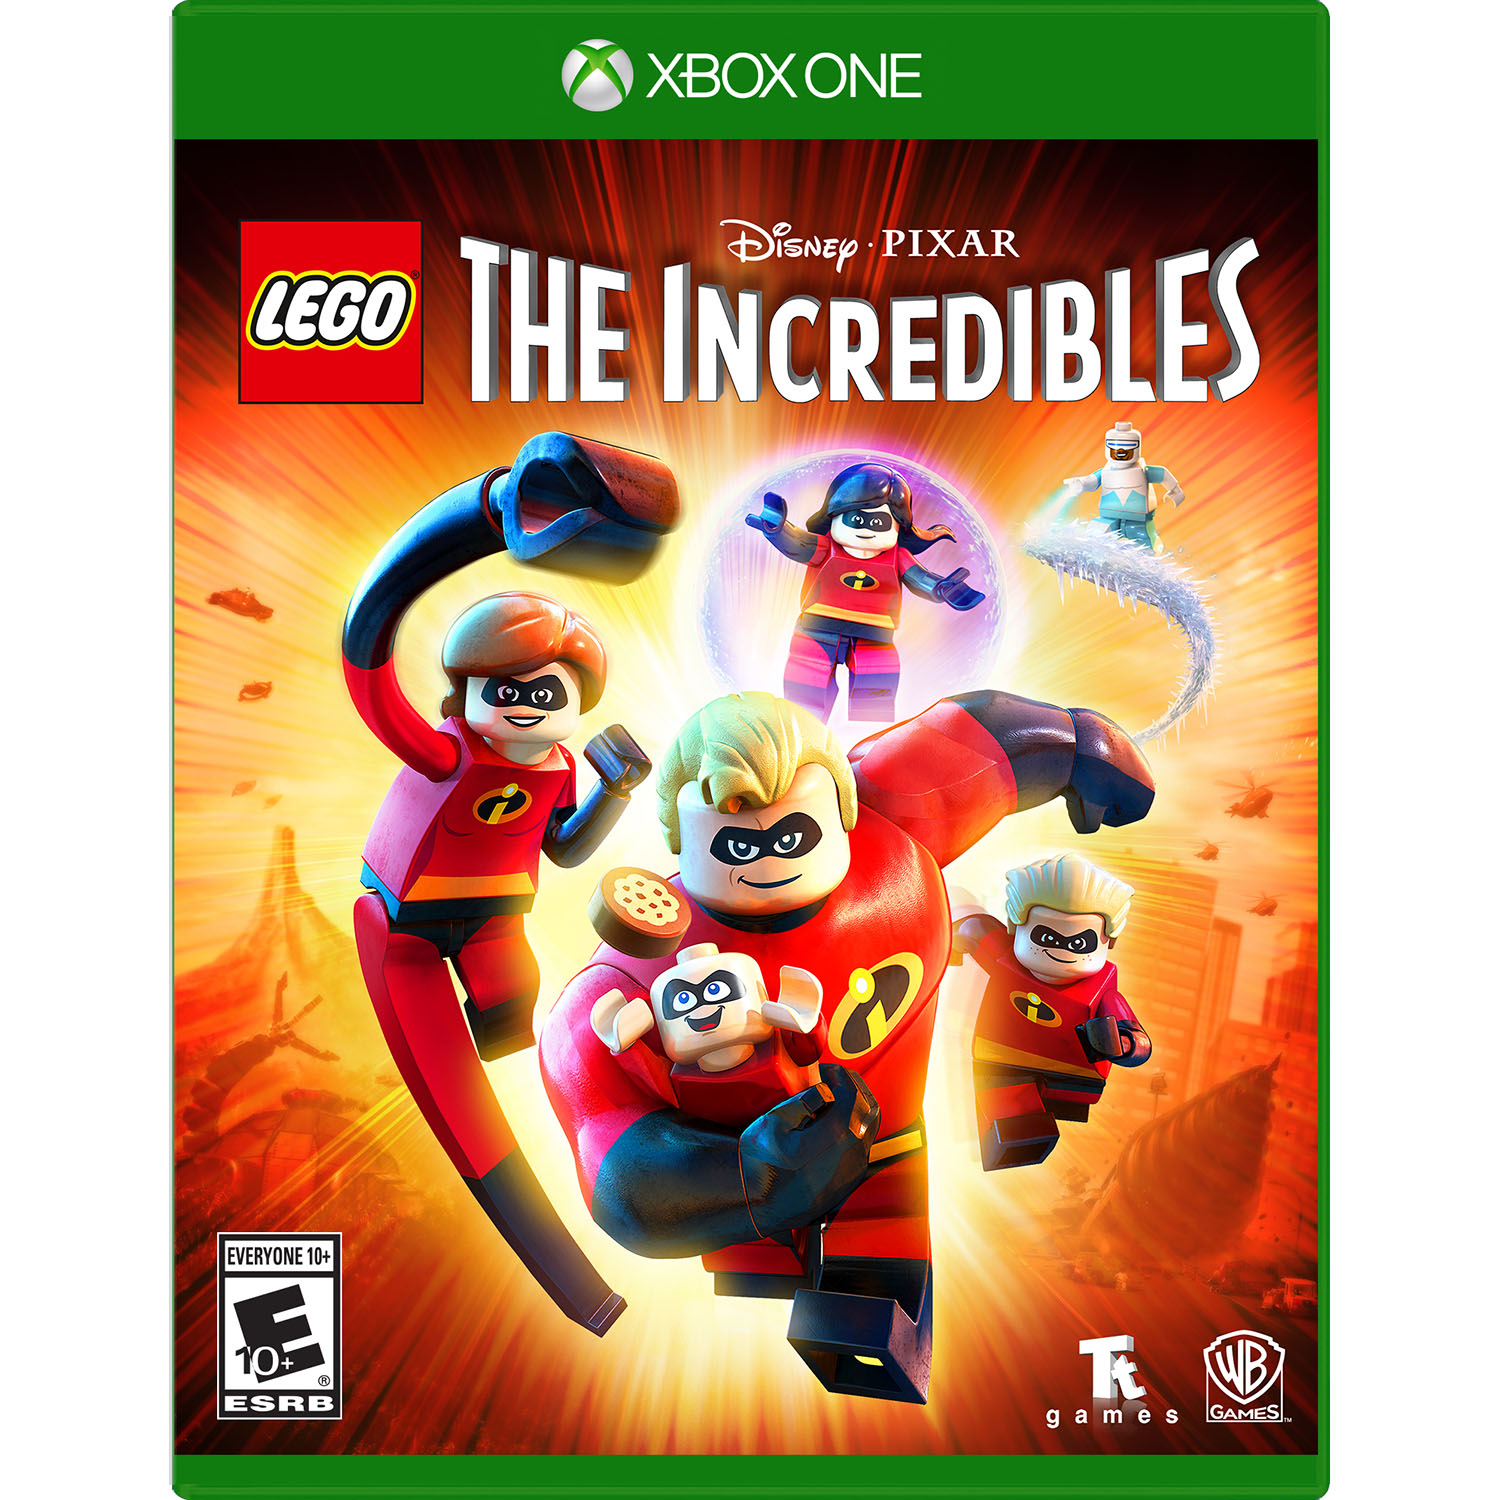 LEGO The Incredibles, Warner Home Video, Xbox One, REFURBISHED/PREOWNED